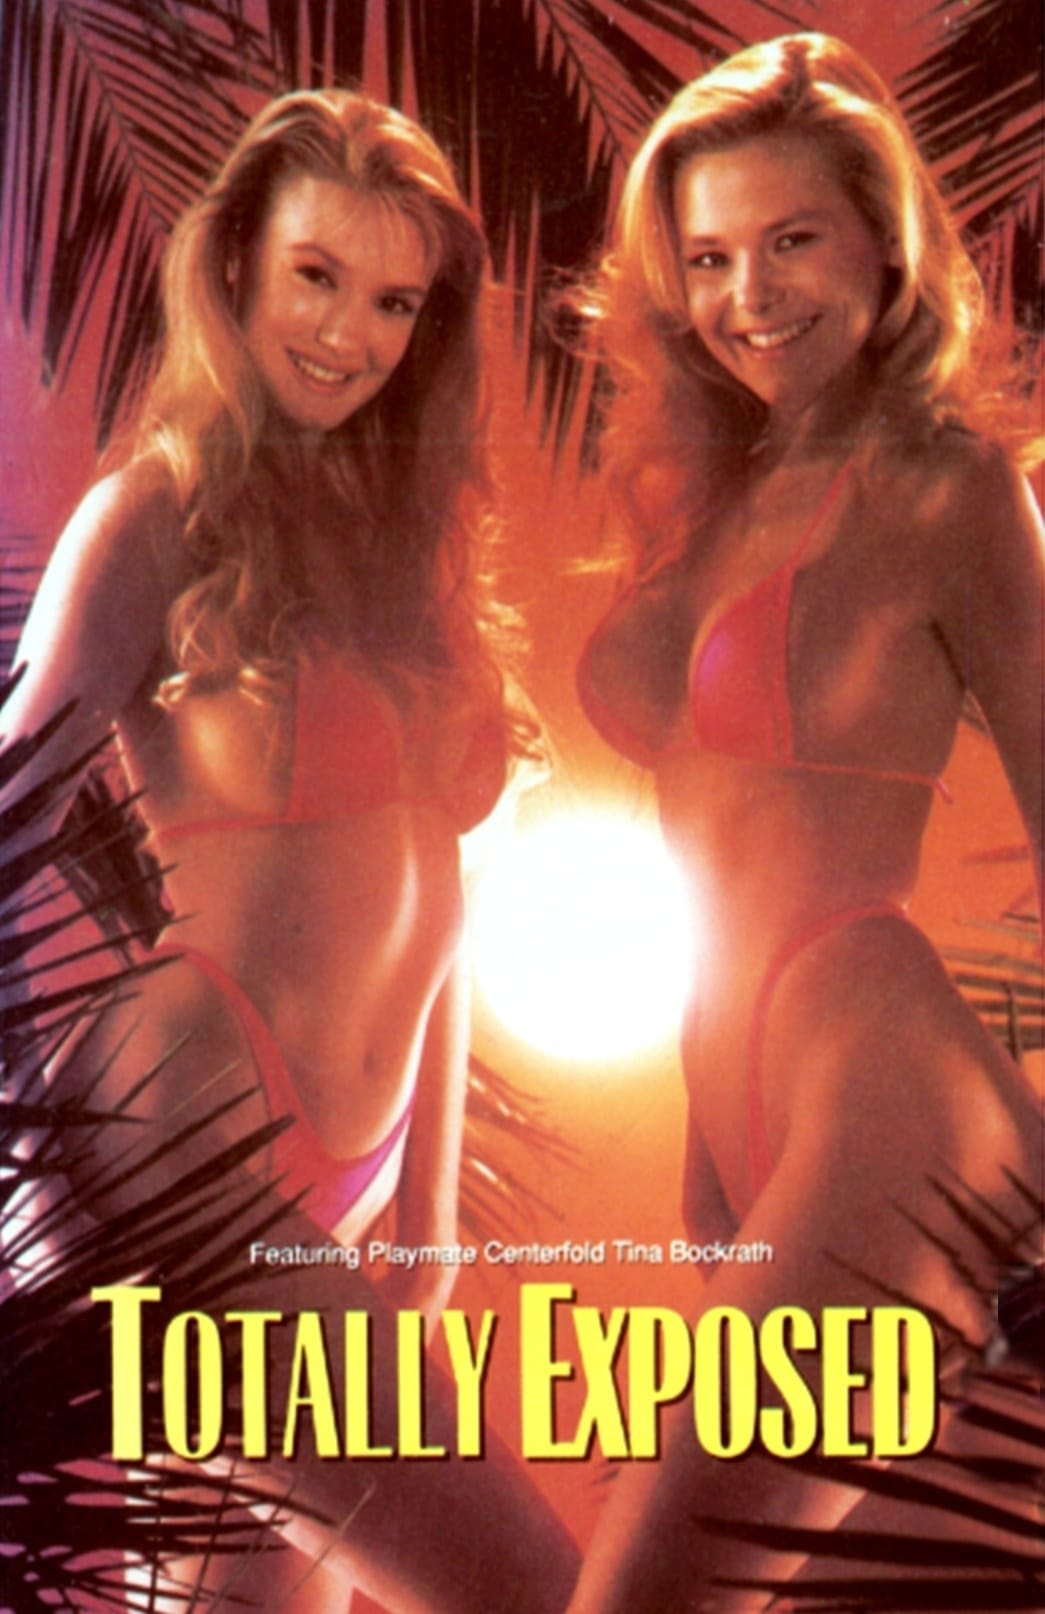 Totally Exposed (1991)